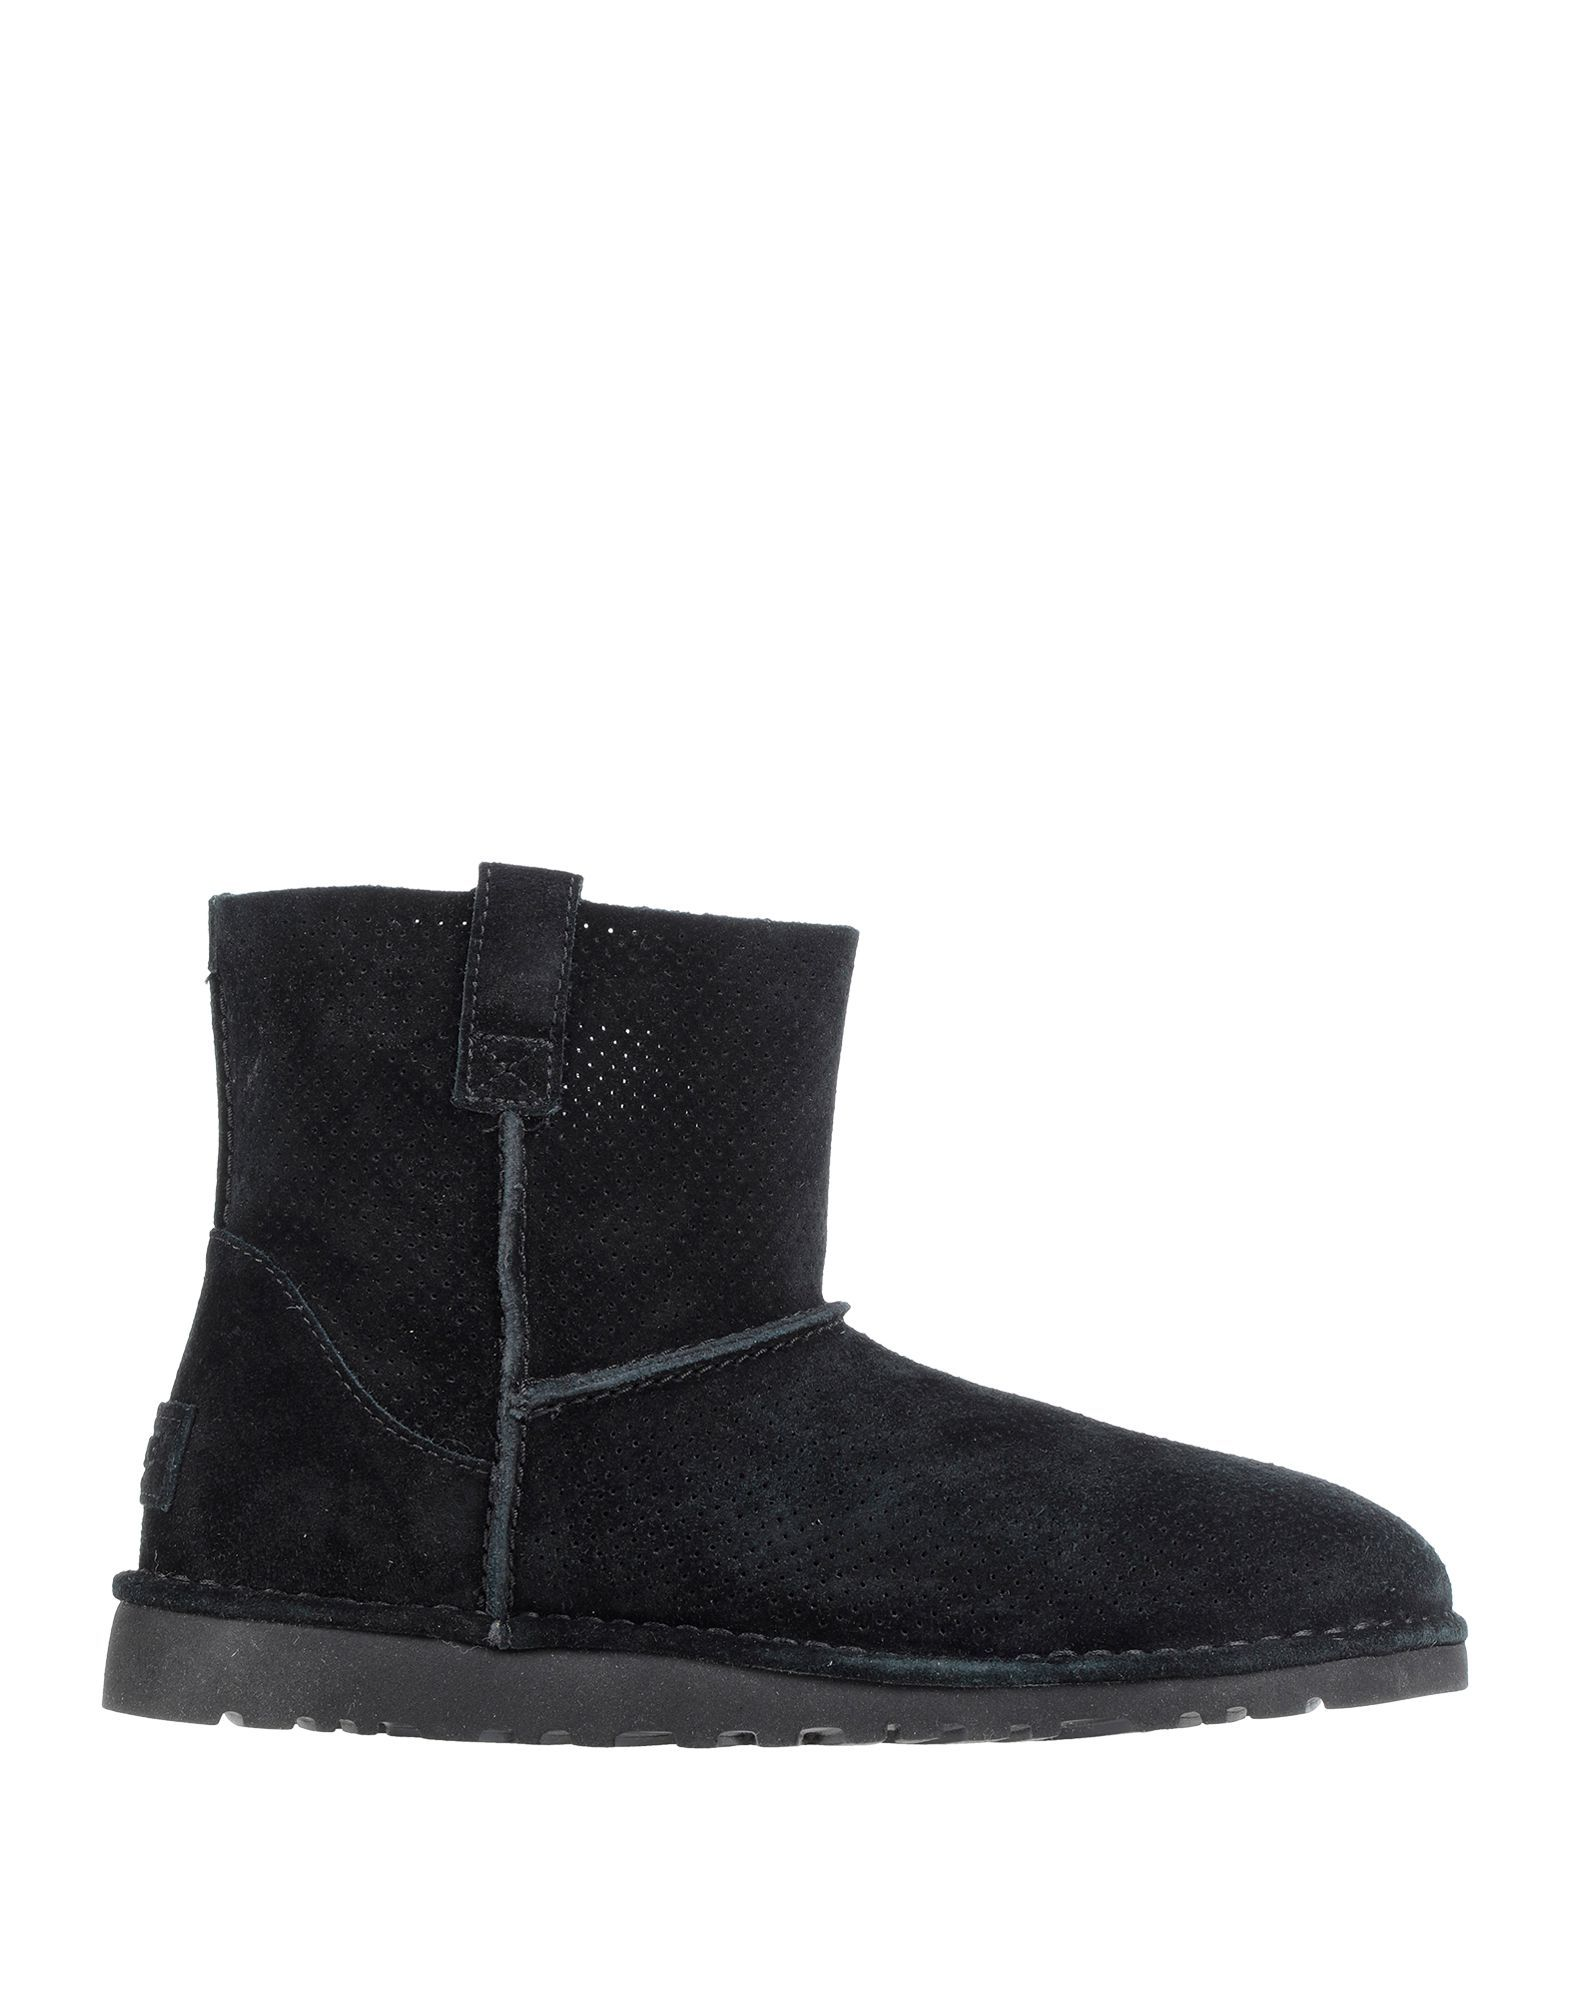 Ugg Australia Black Leather Boots